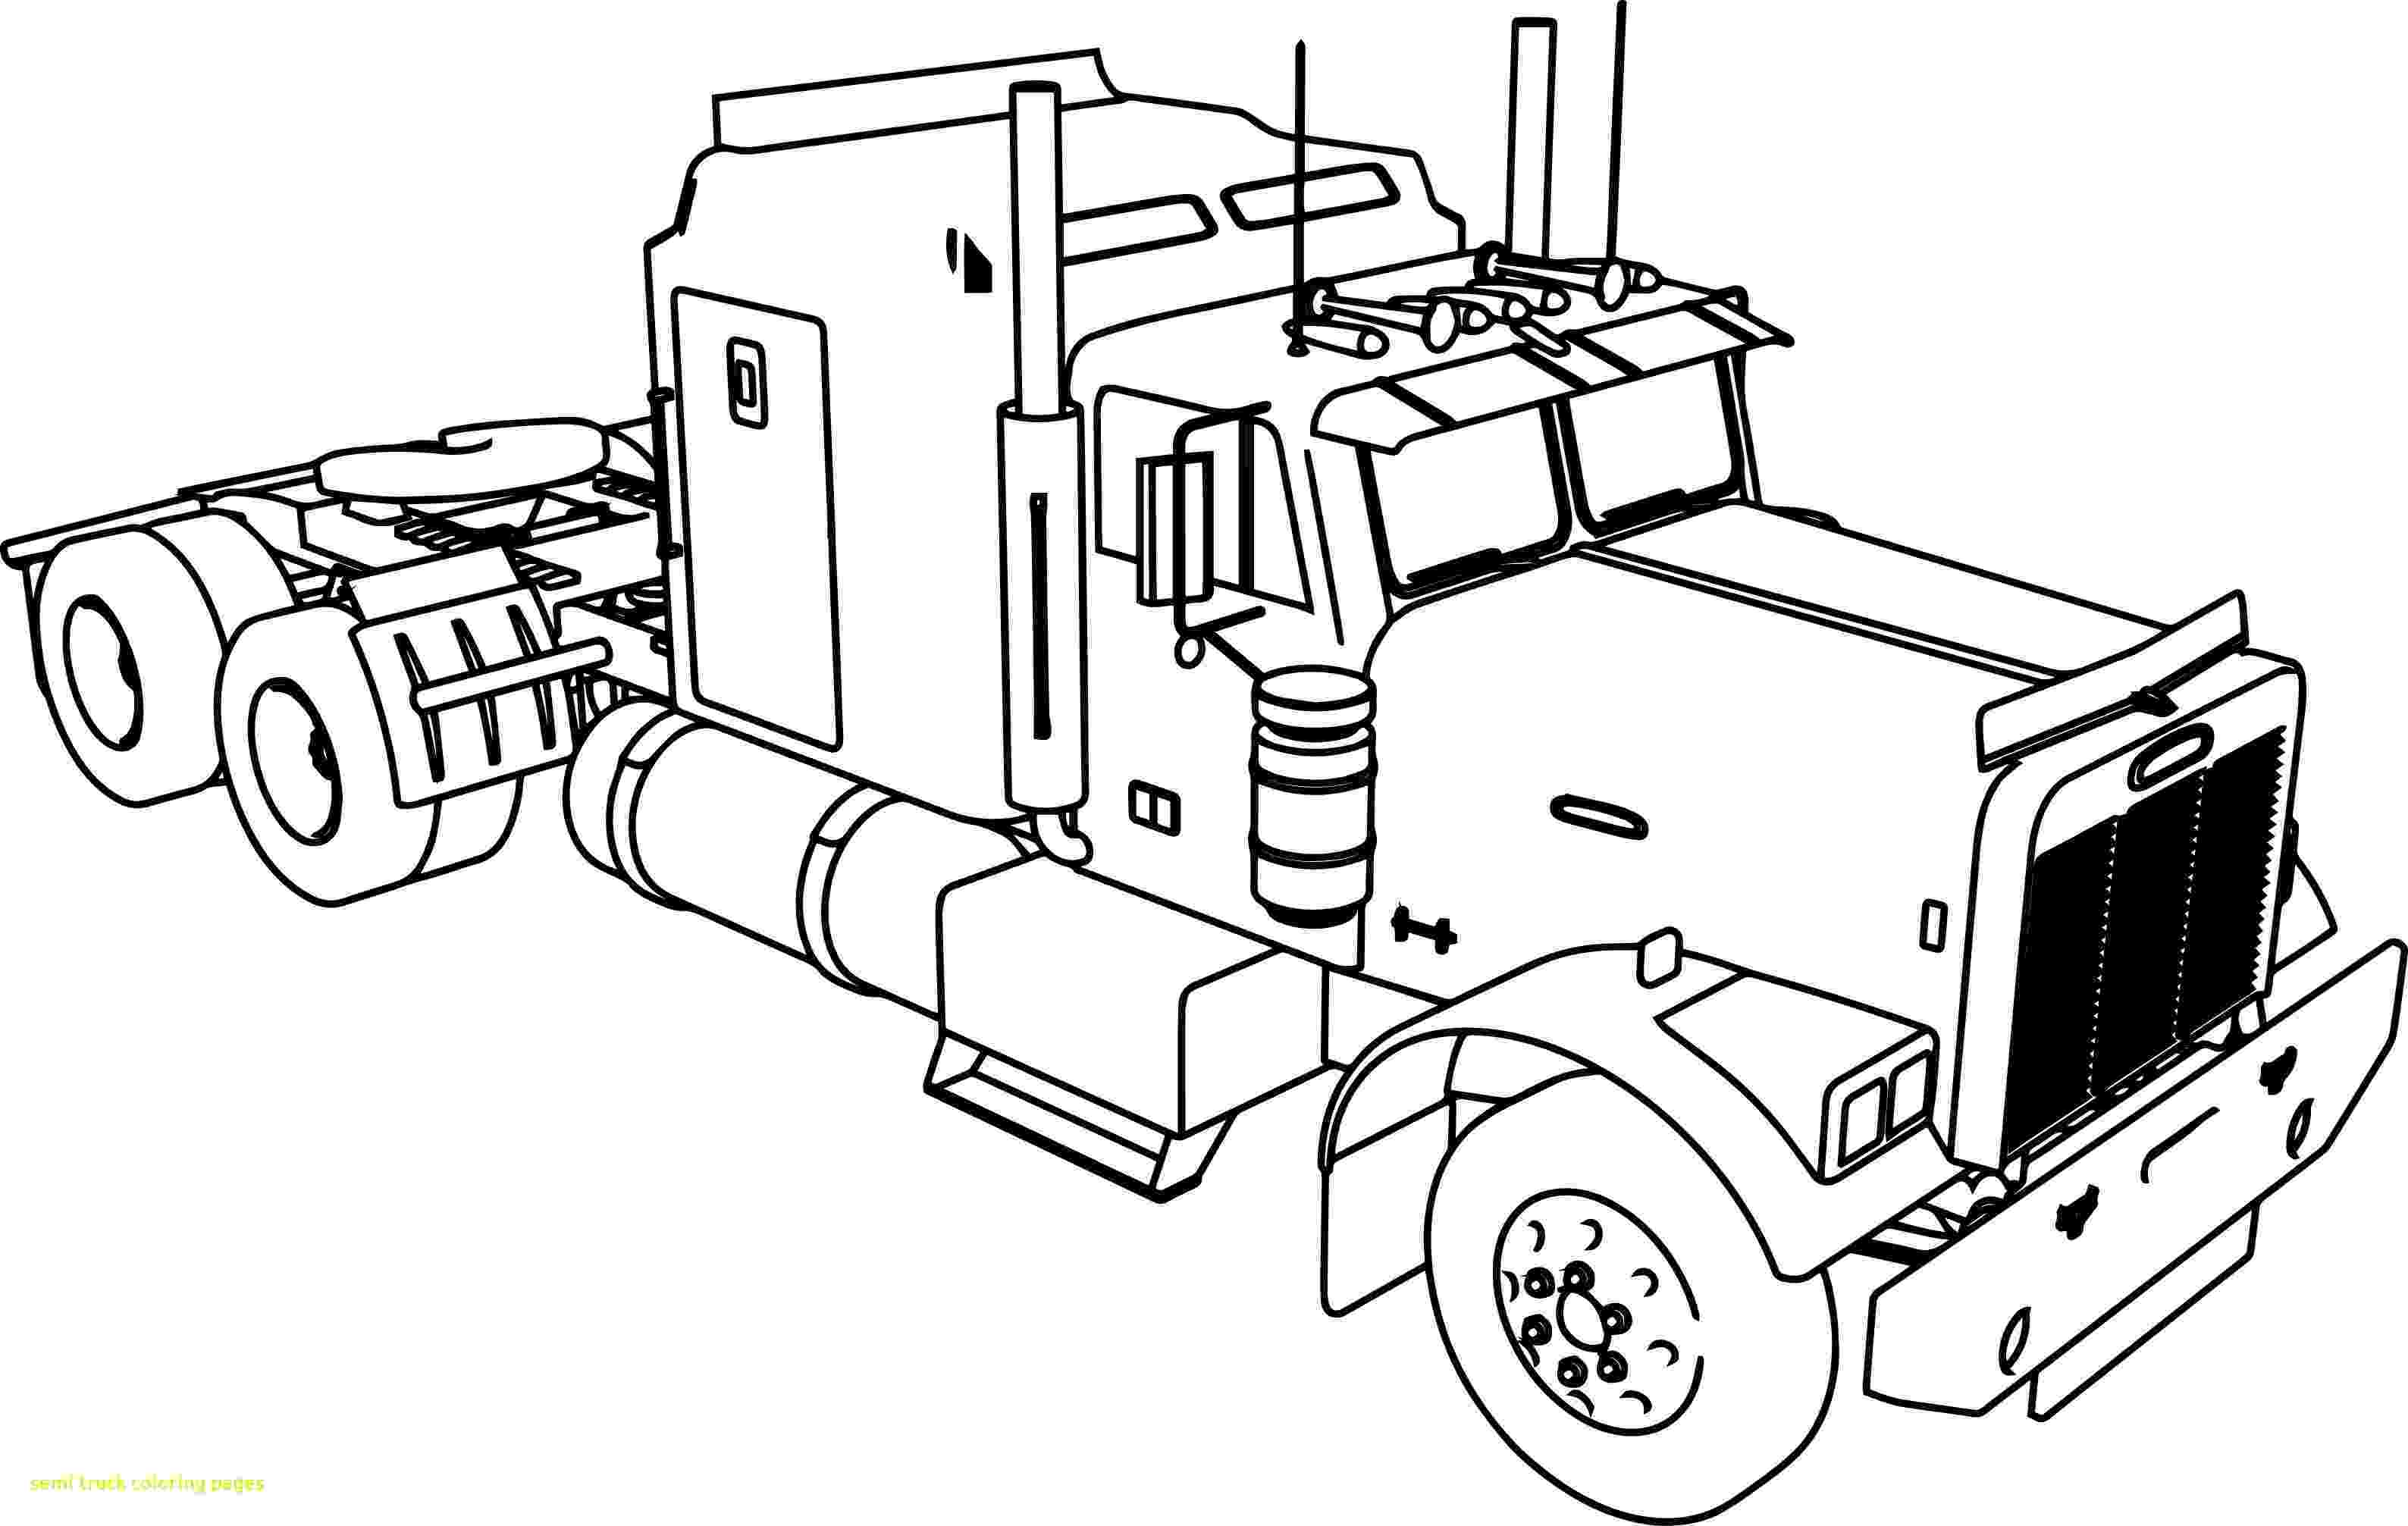 coloring pages of semi trucks semi truck coloring pages to download and print for free coloring trucks semi of pages